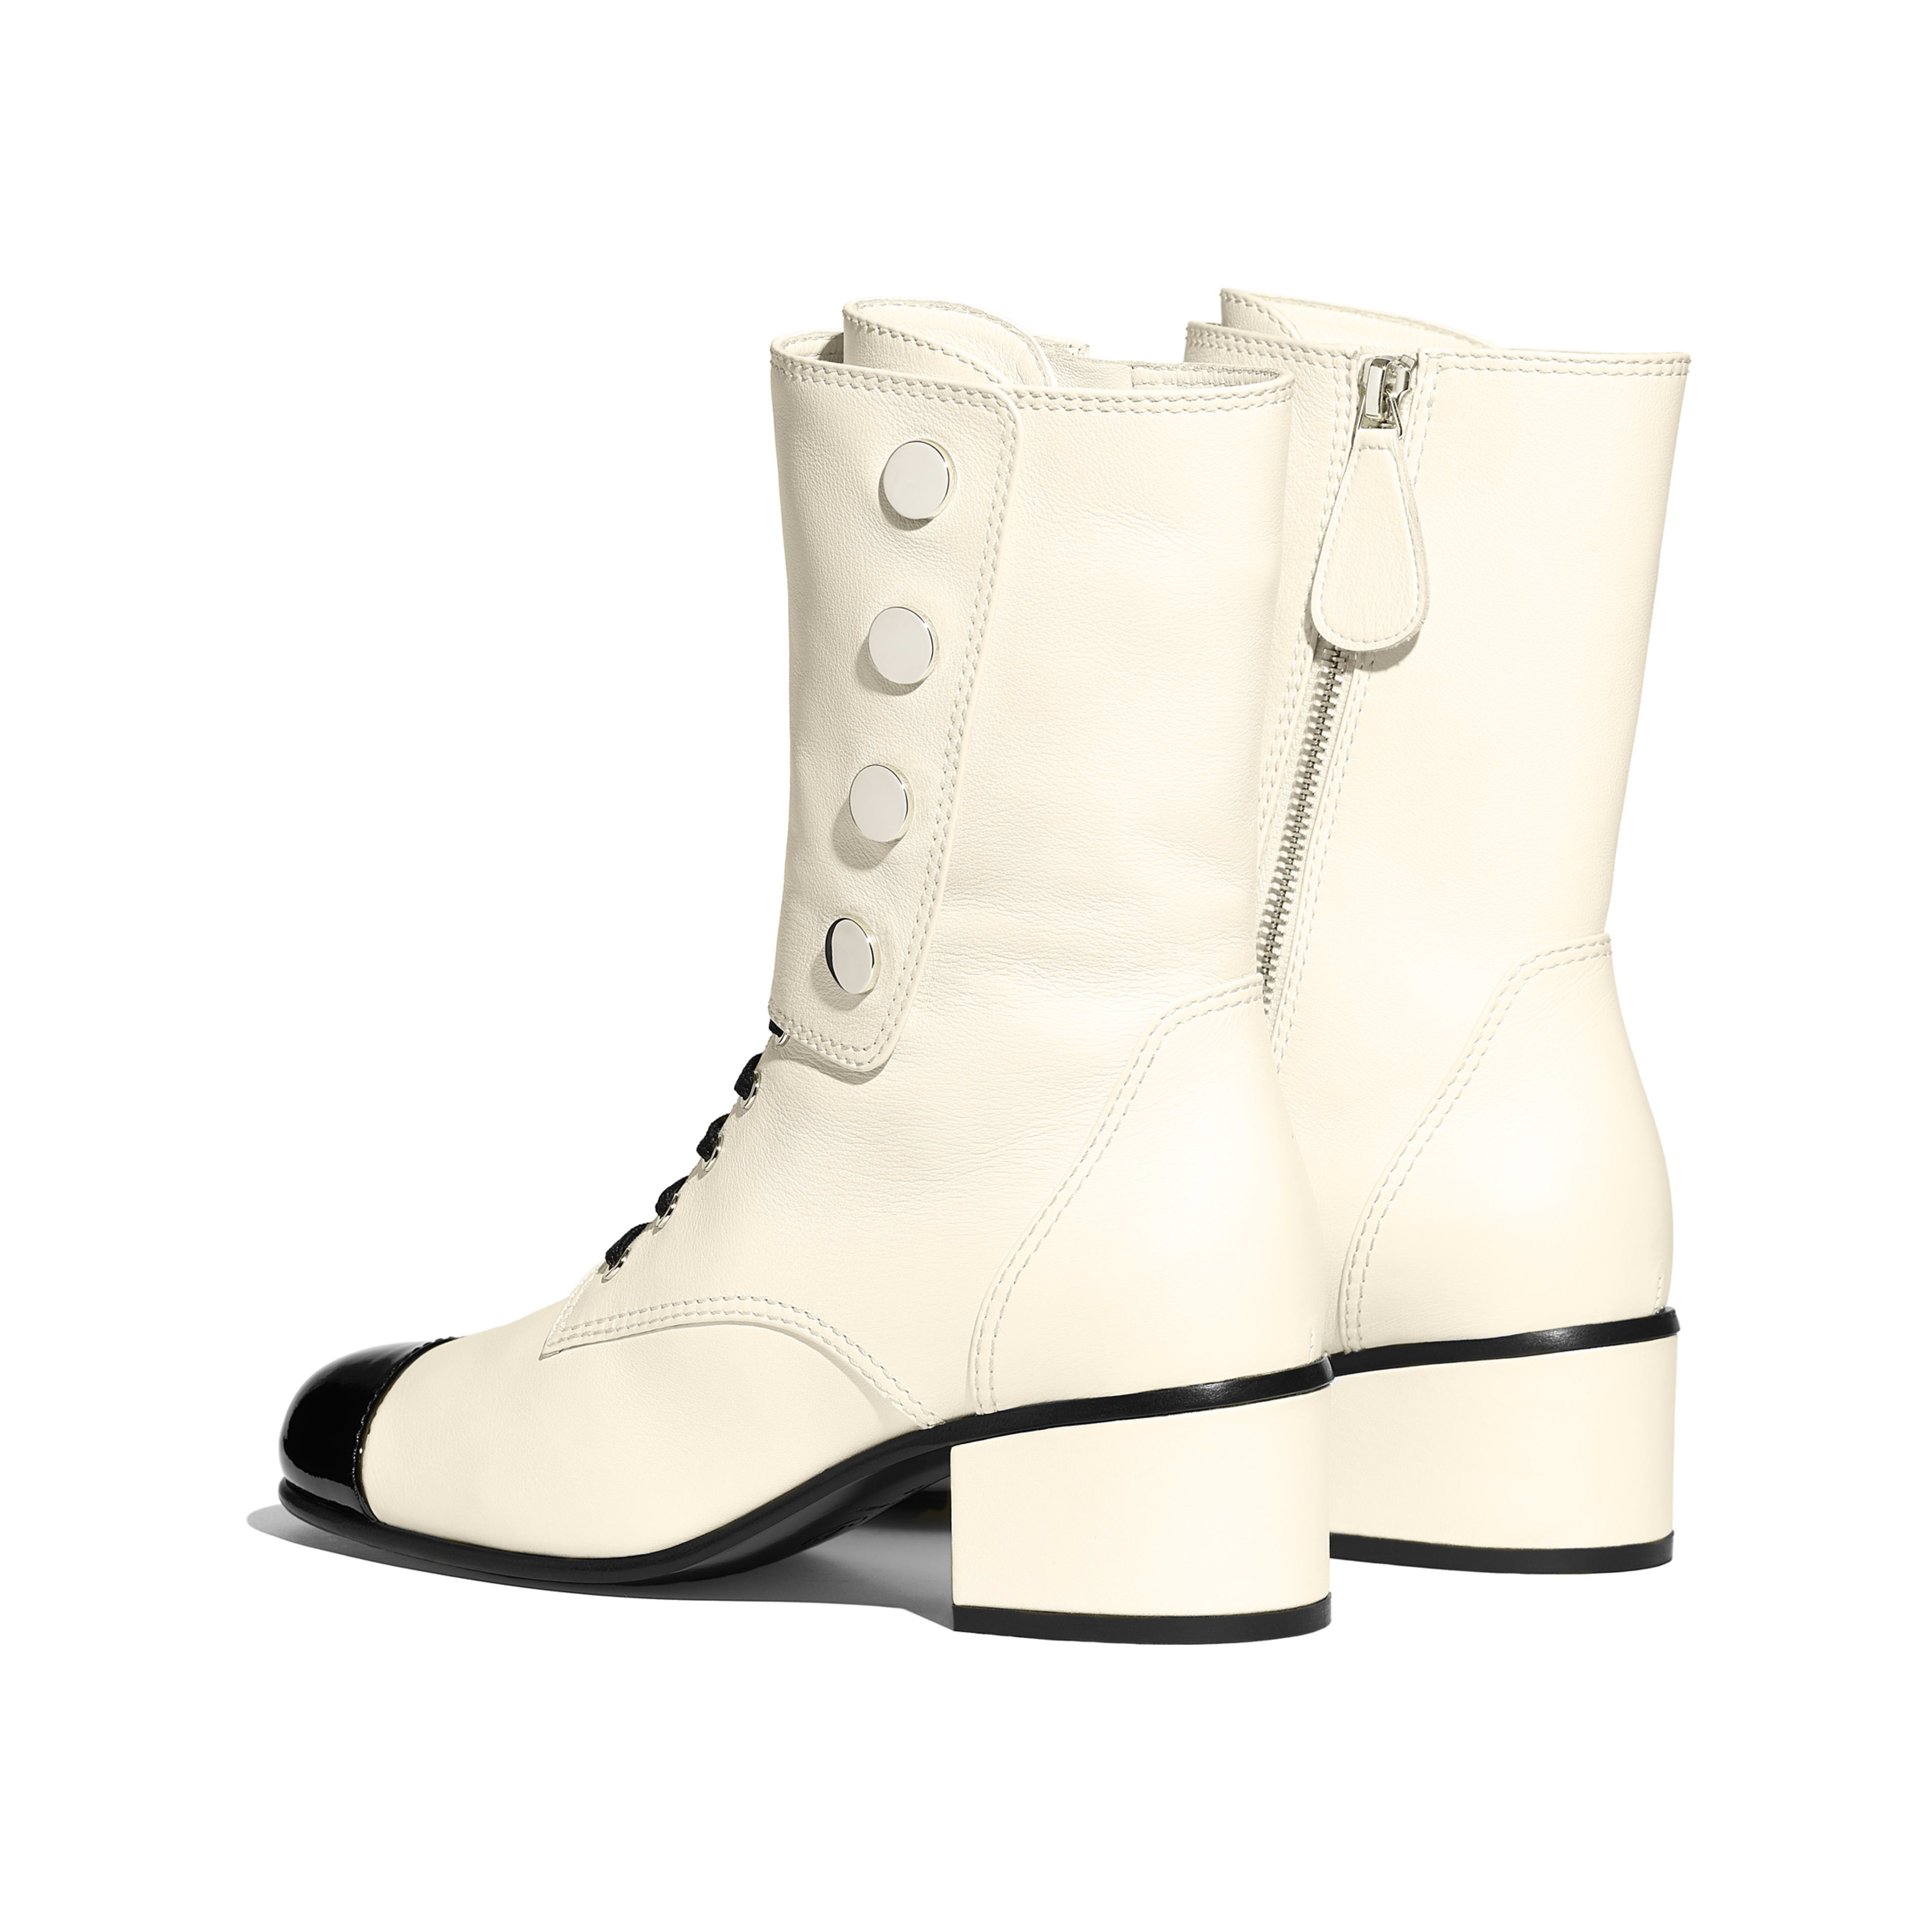 Ankle Boots - Ivory & Black - Calfskin & Patent Calfskin - Other view - see full sized version